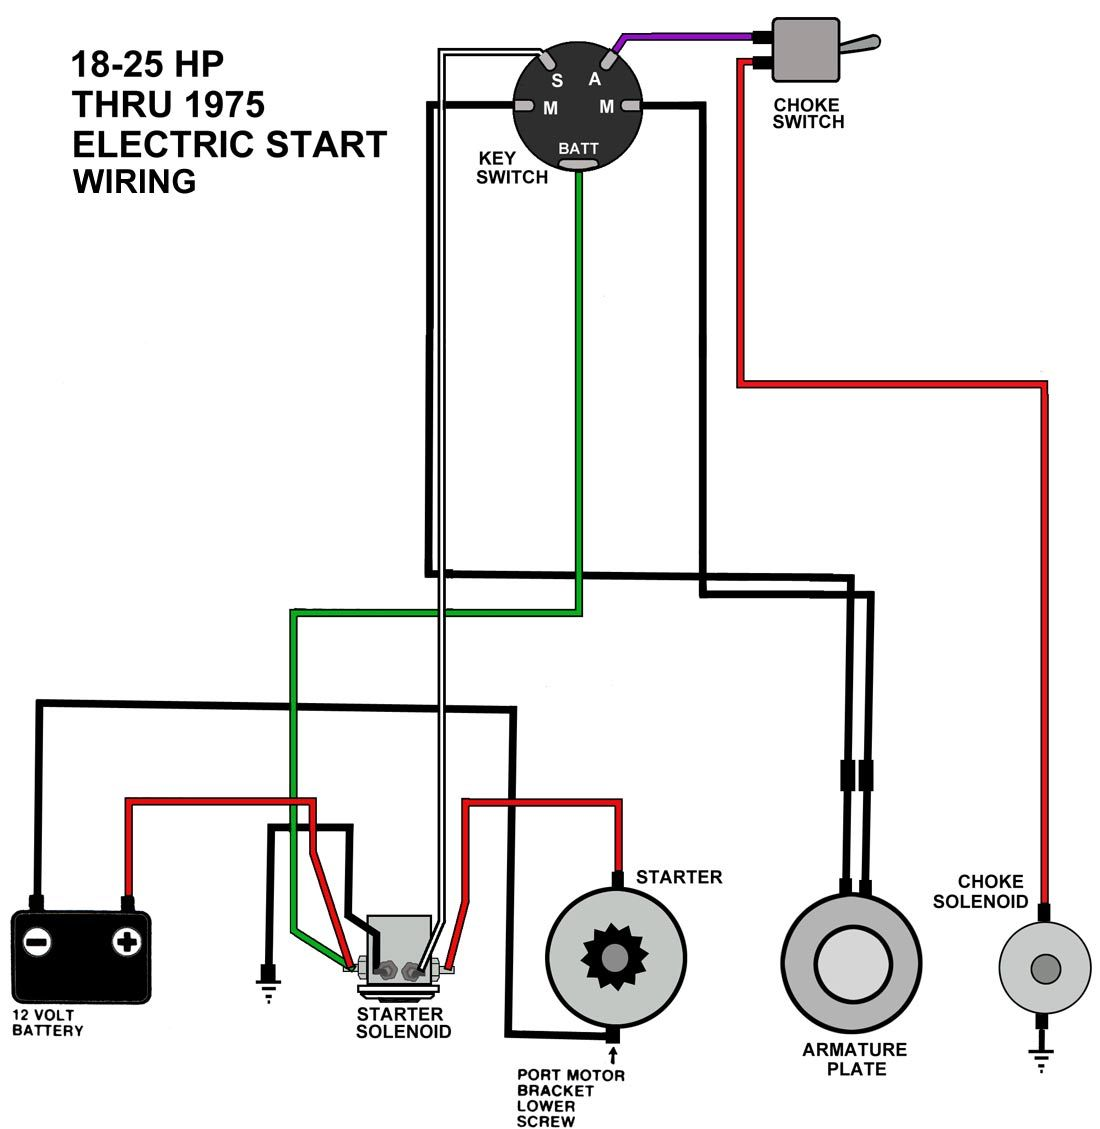 Yanmar Solenoid Wiring Diagram Wiring in 2020 | Boat wiring, Trailer wiring  diagram, Kill switchPinterest